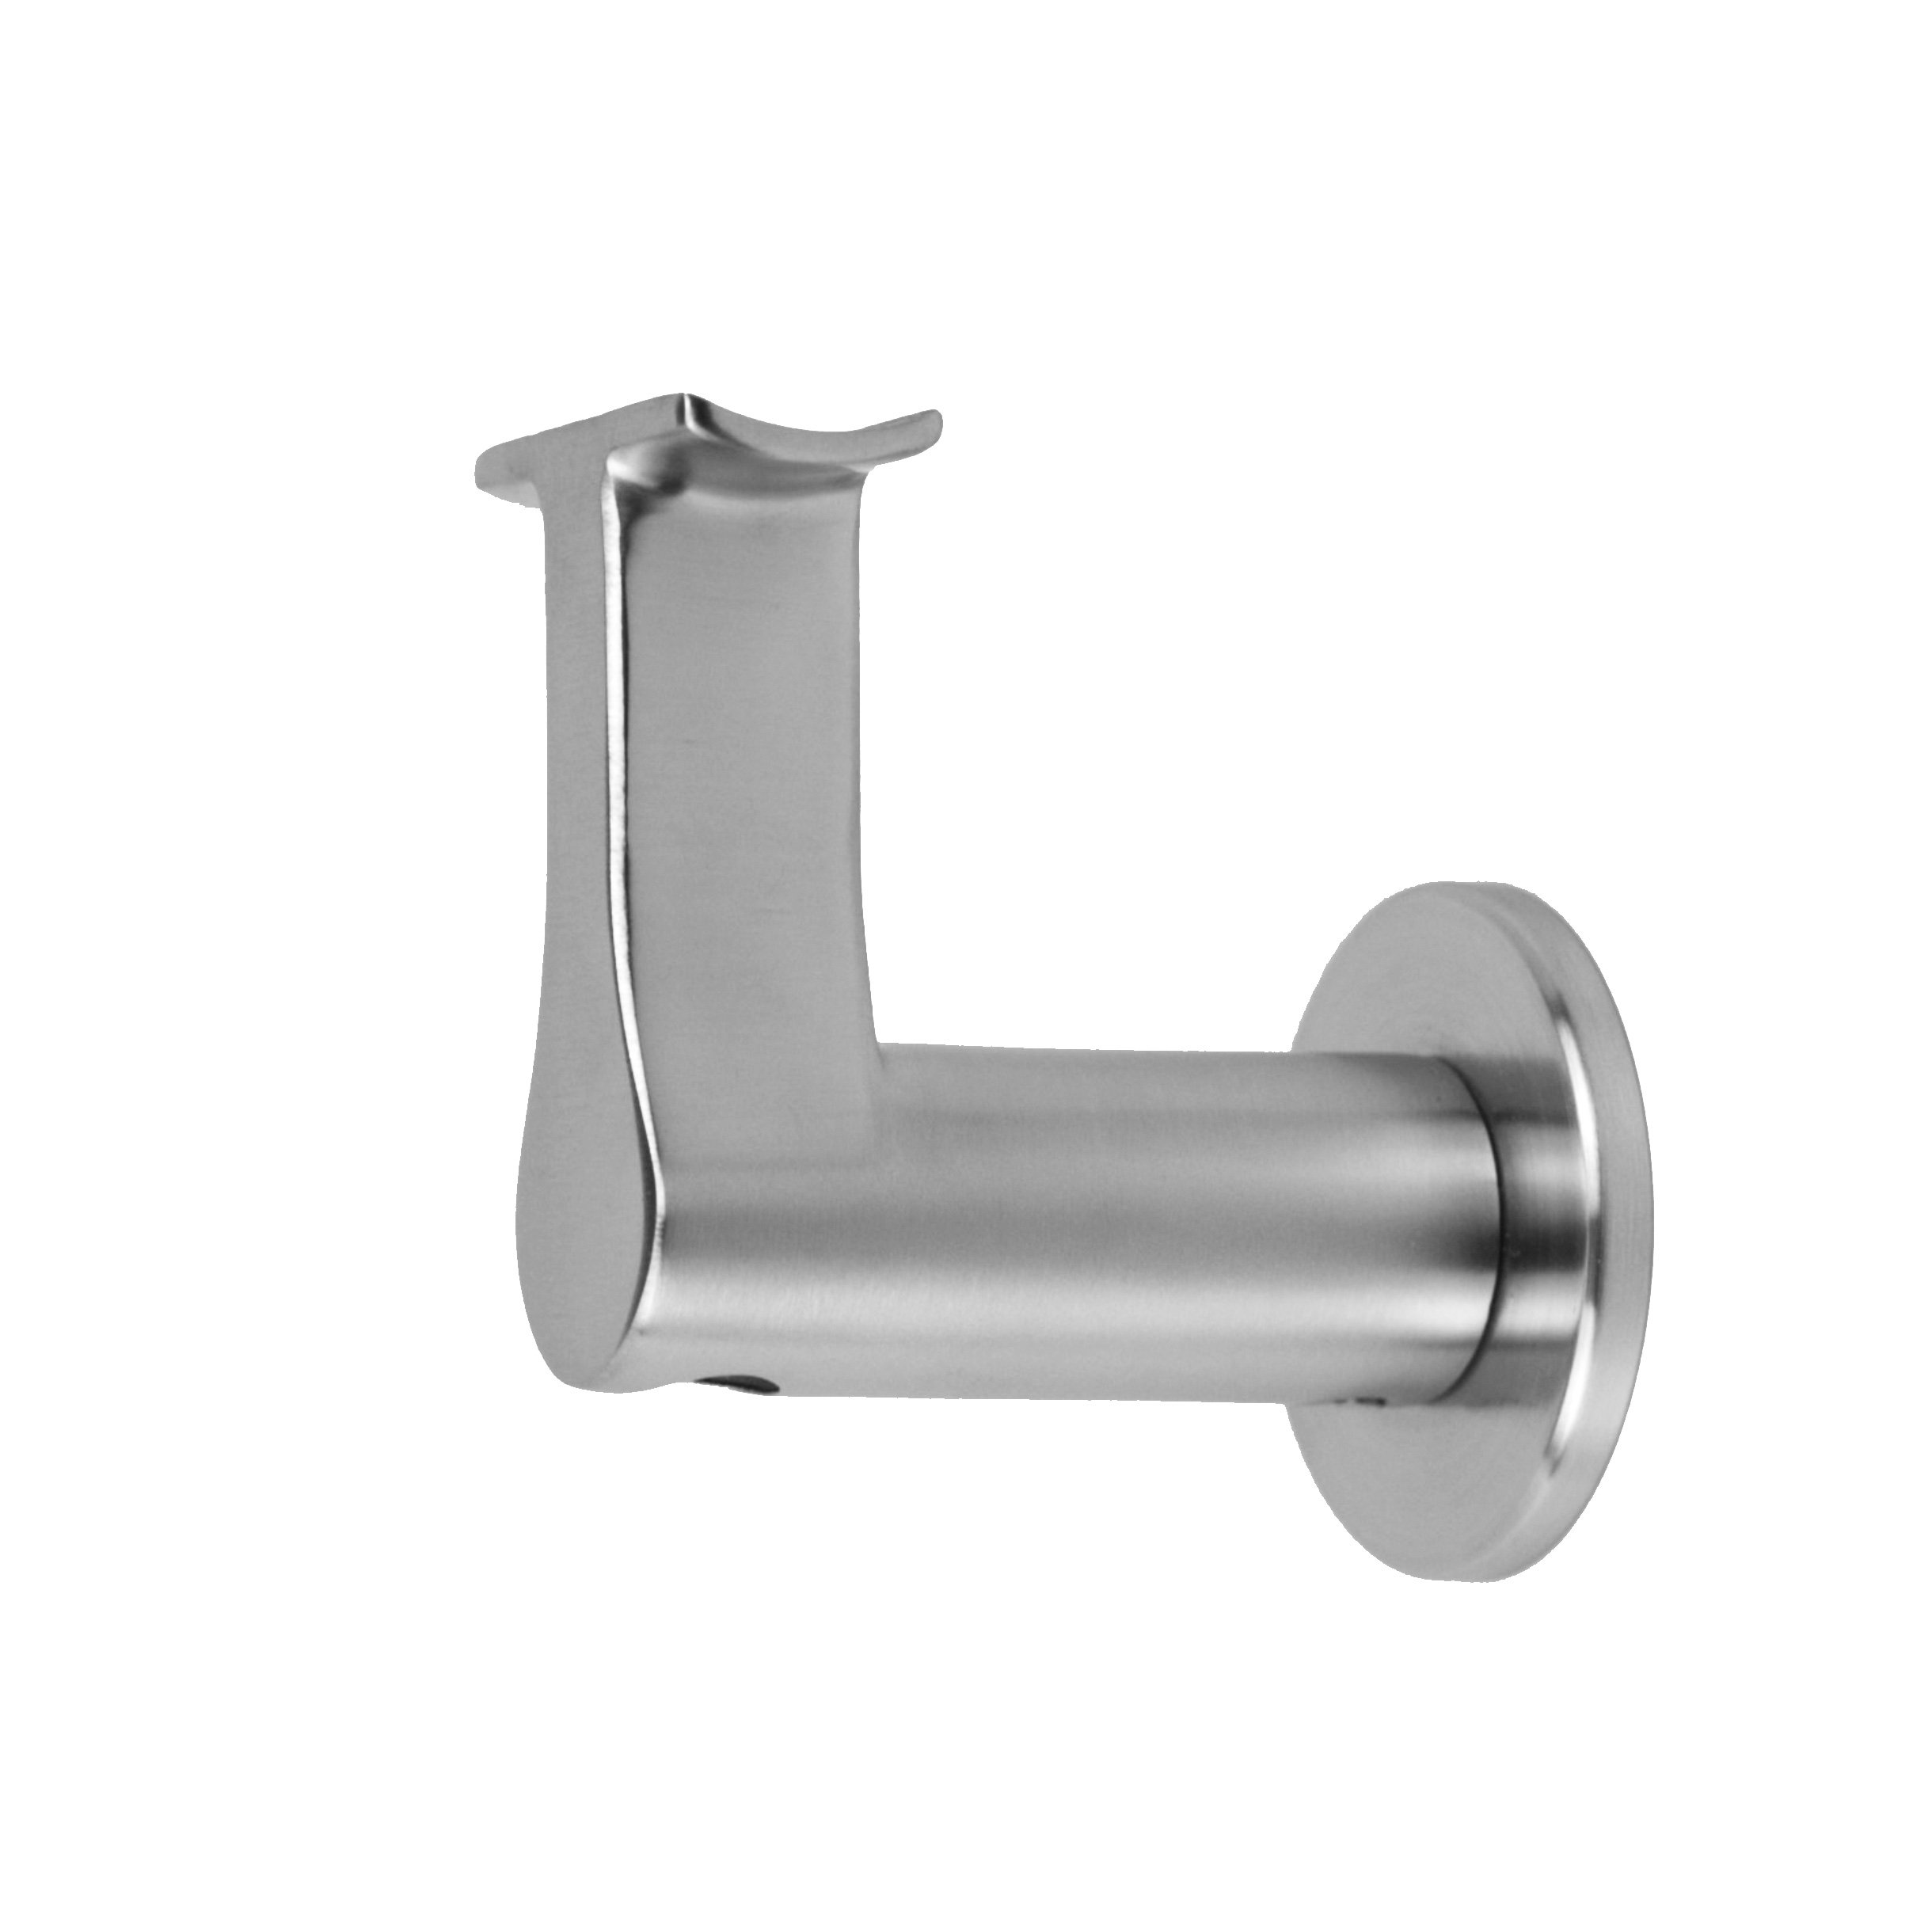 Stainless Steel Handrail Wall Bracket Round Slim (Mounting Surface: Wood or Sheet Rock)